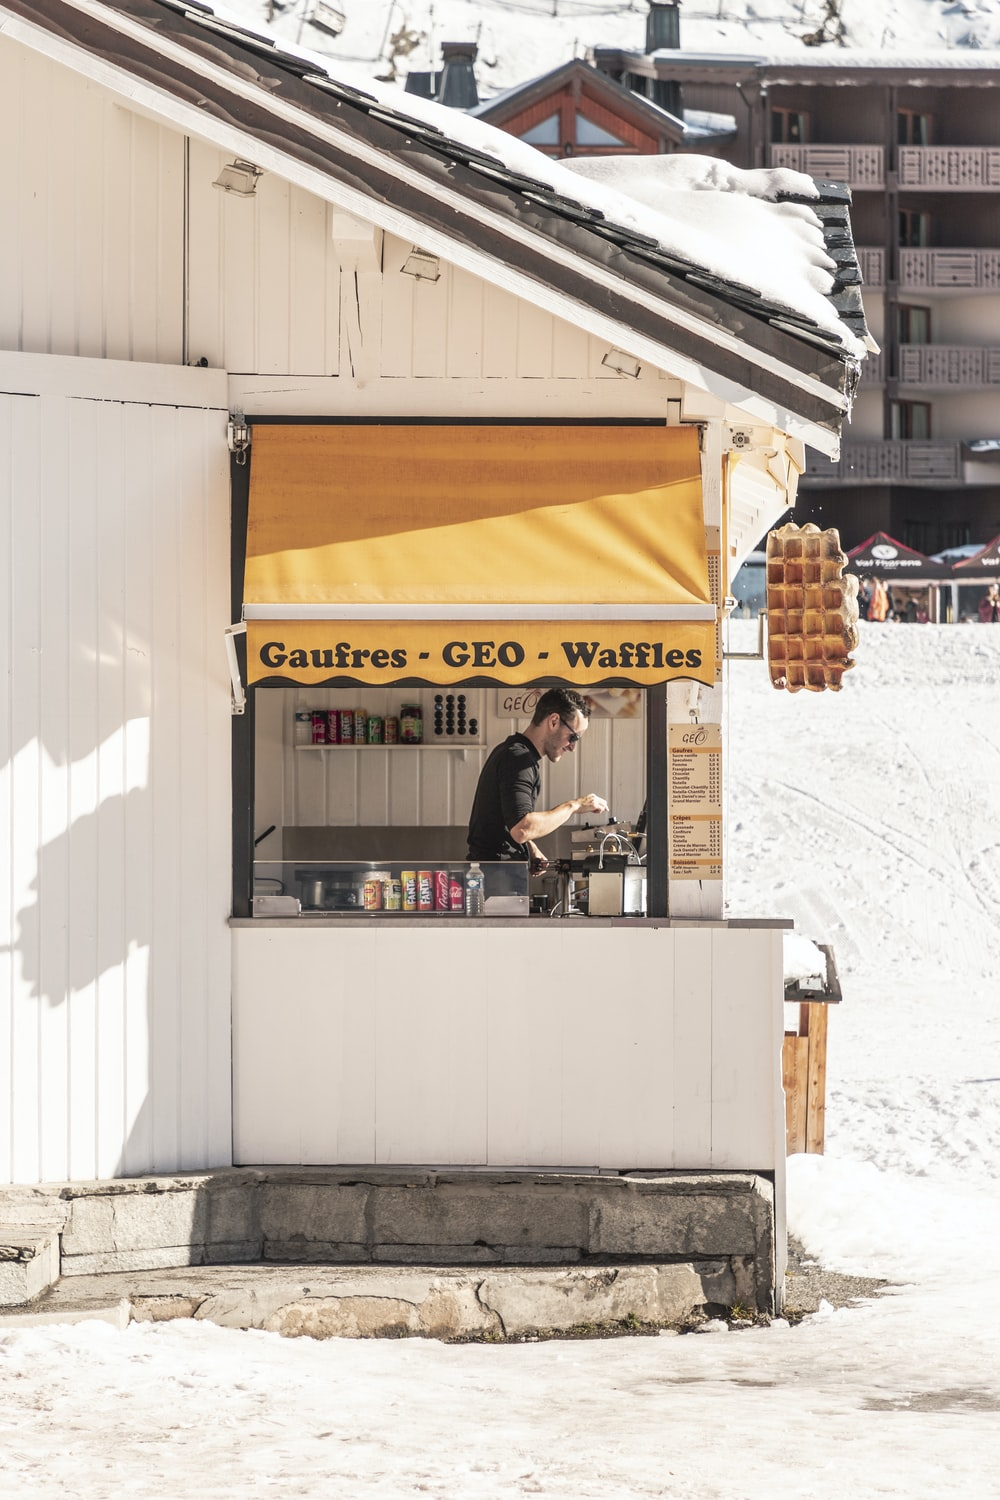 man on Gaufres Geo Waffles store during daytime